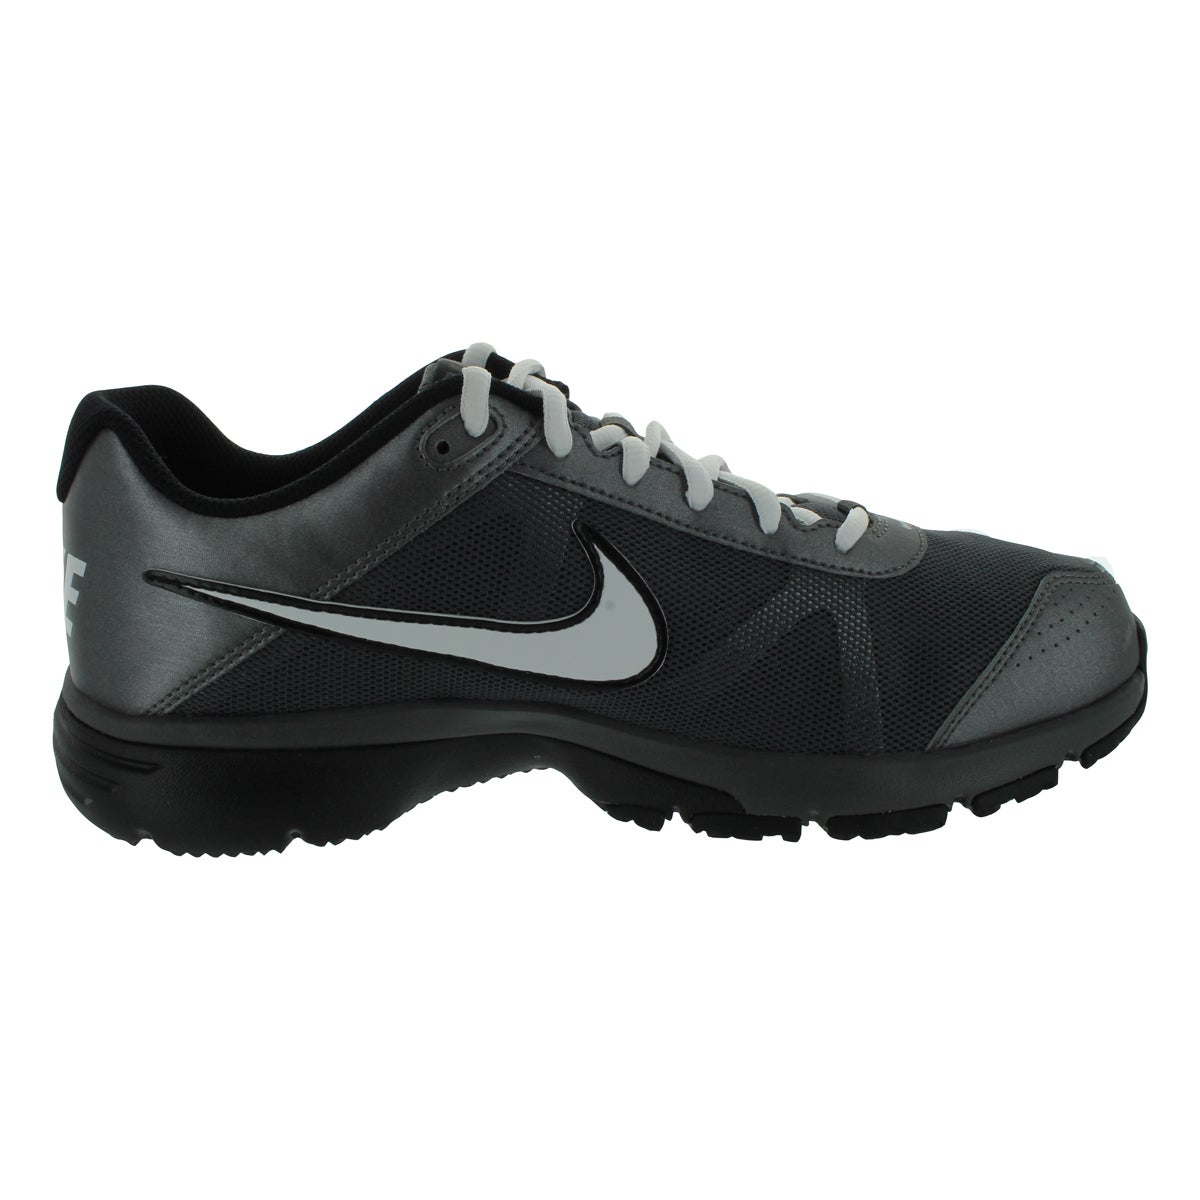 best service 44588 69c85 Shop Nike Dual Fusion Tr Iii Training Shoes Dark Grey White Black) - Free  Shipping Today - Overstock - 12328547